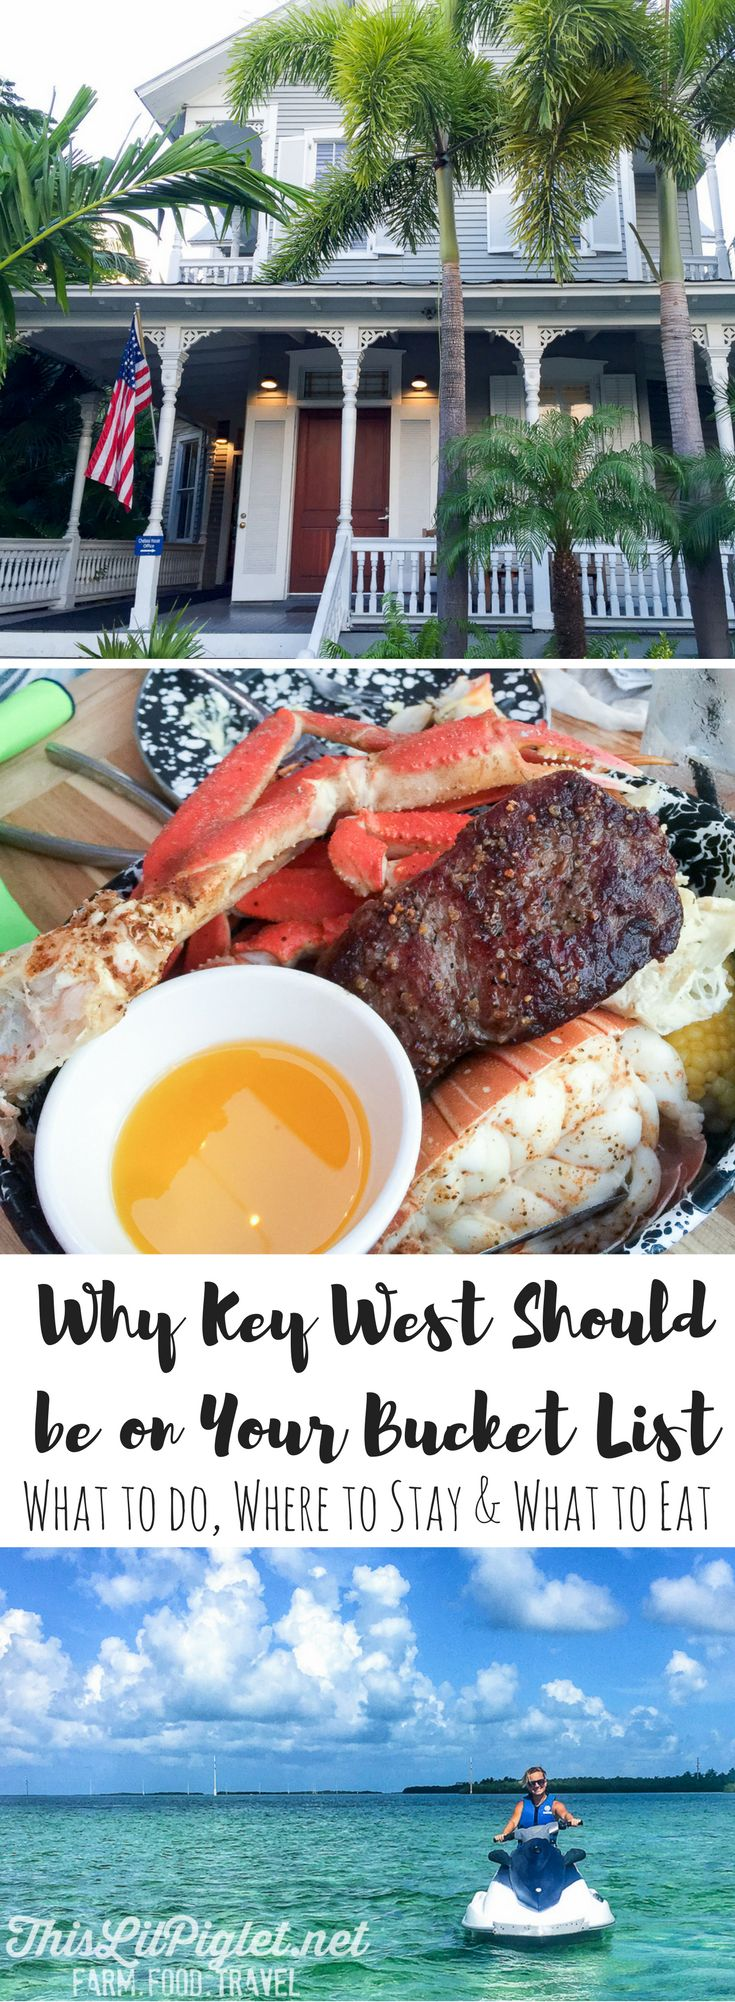 Bucket List Travel: Where to Stay, What to do and What to Eat in Key West Florida // via @thislilpiglet